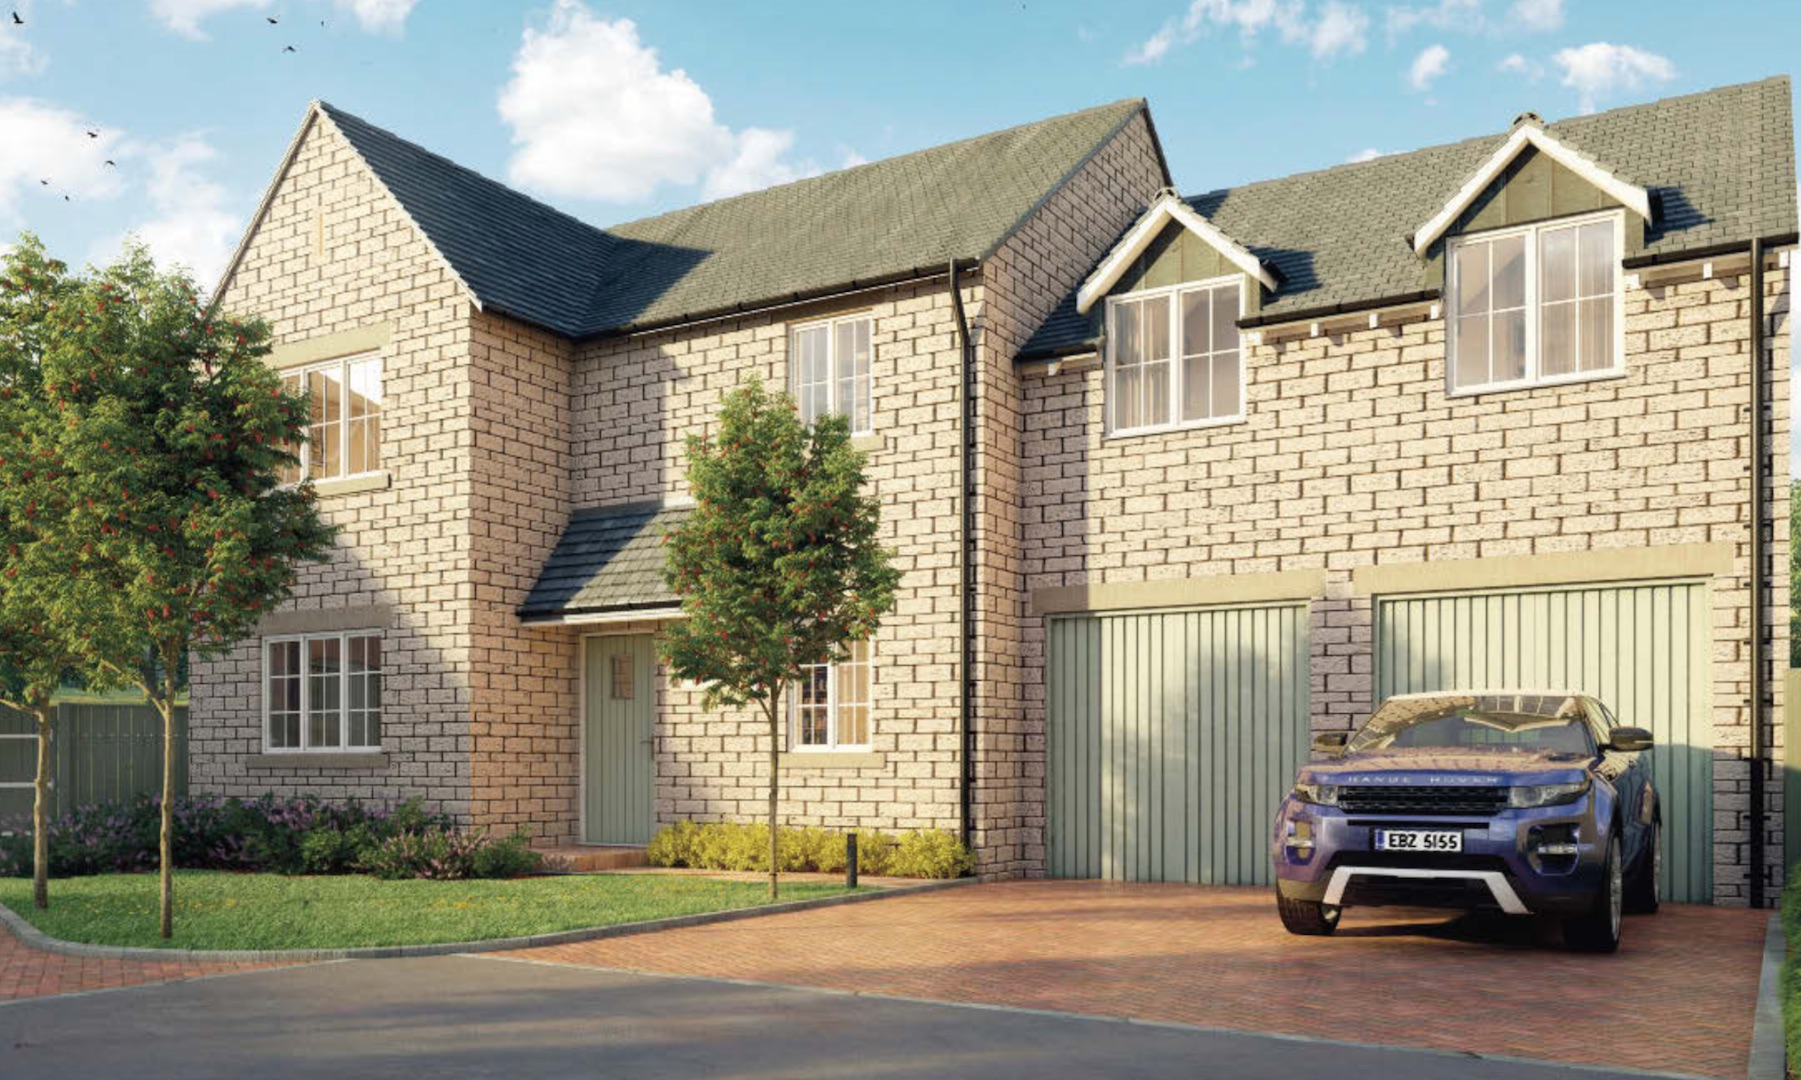 Plot 4 - 4 bed detached with double garage £479,950, see Plot 4 on Brochure for Details. Or view on Rightmove here